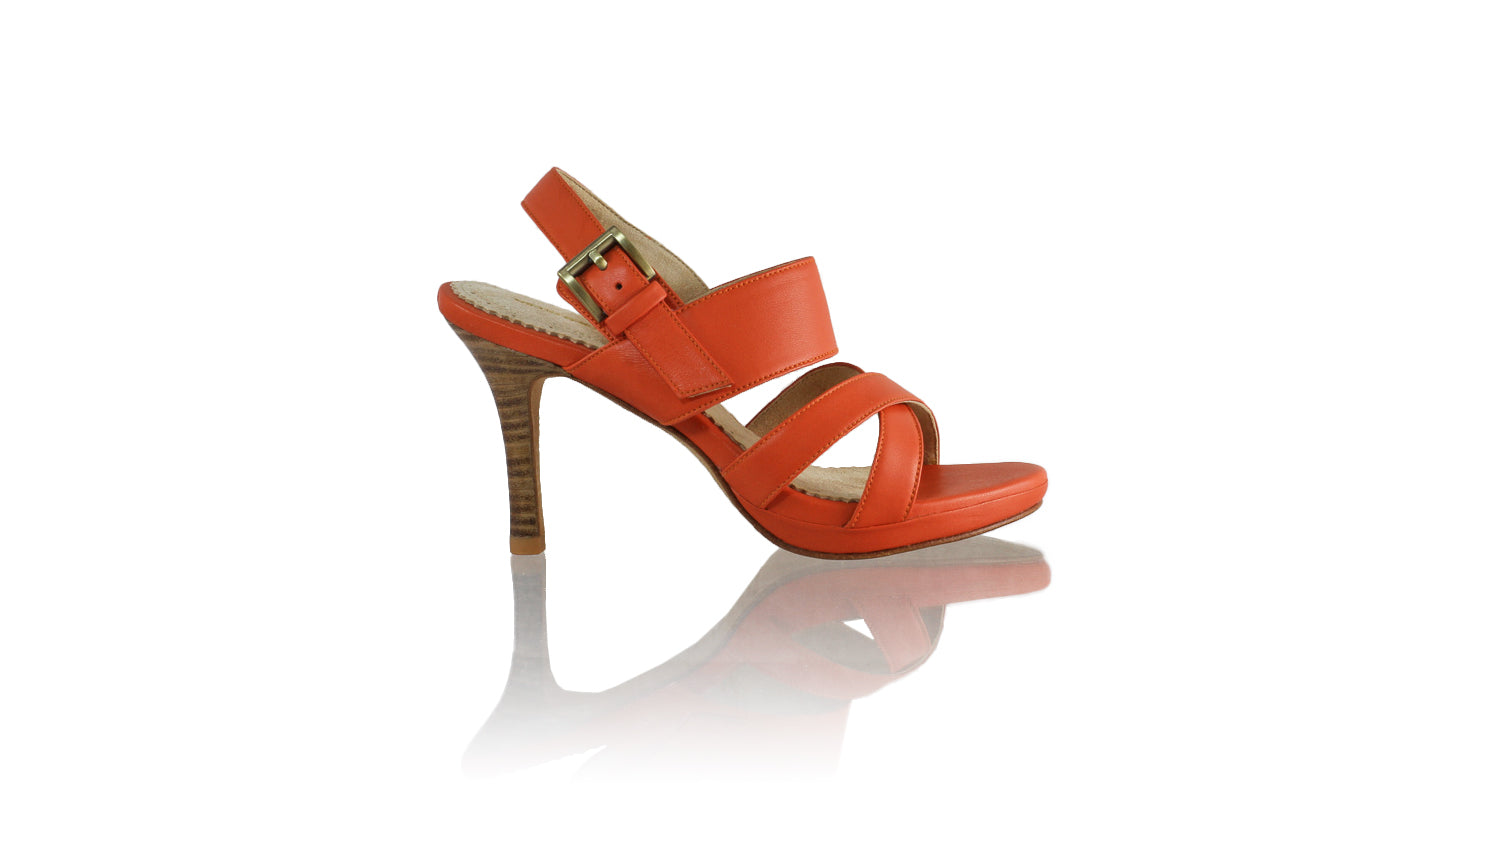 Leather-shoes-Tabitha 90mm SH PF - Orange-sandals higheel-NILUH DJELANTIK-NILUH DJELANTIK